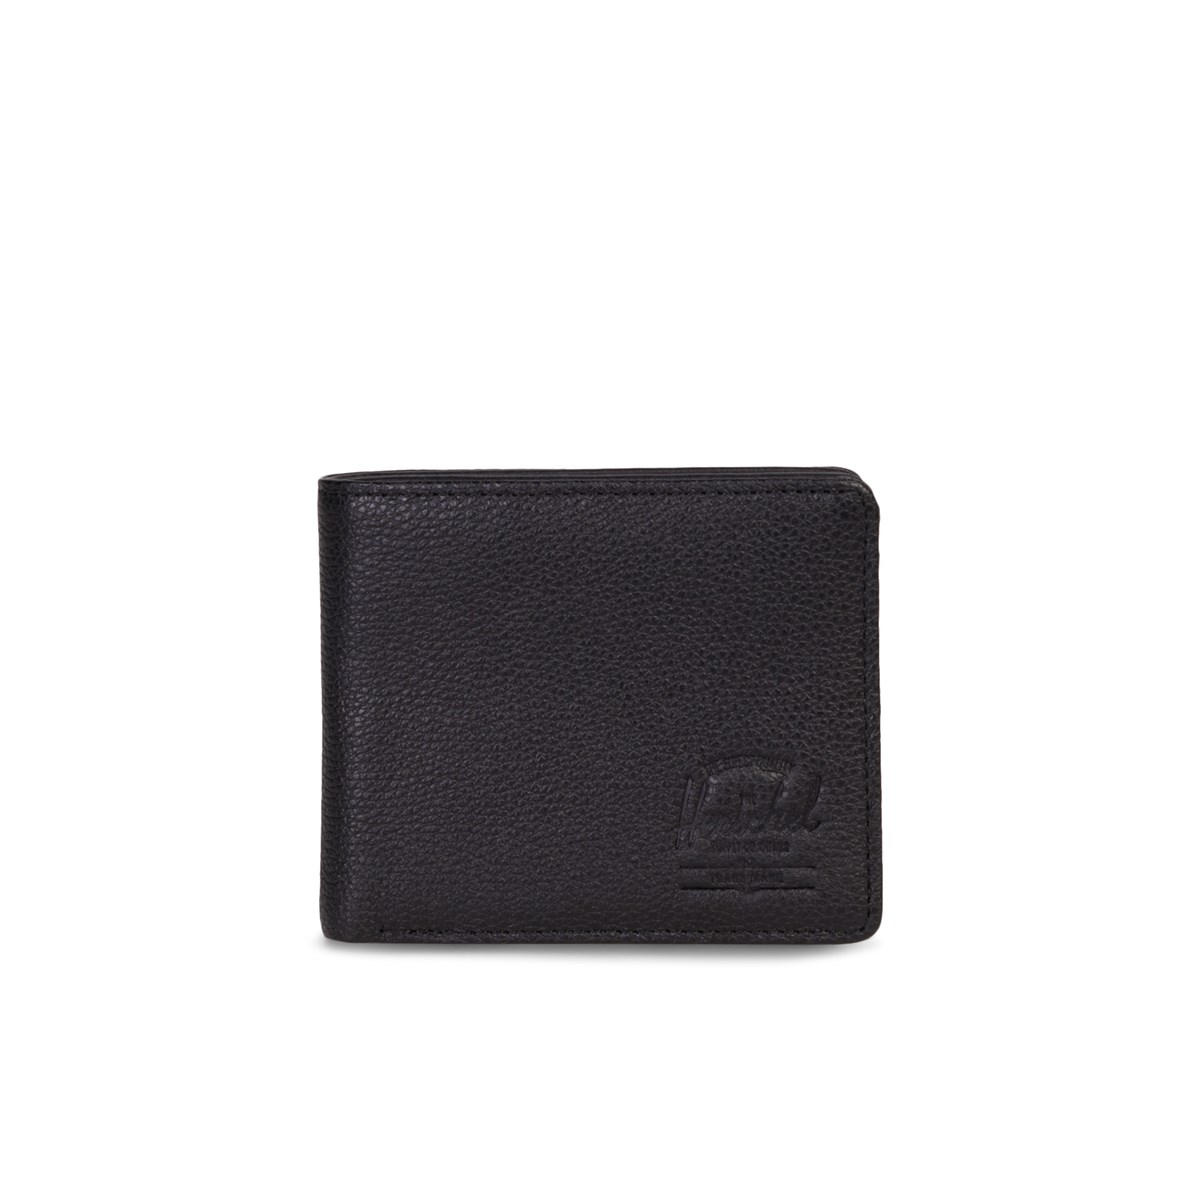 Roy Coin XL Black Leather Wallet